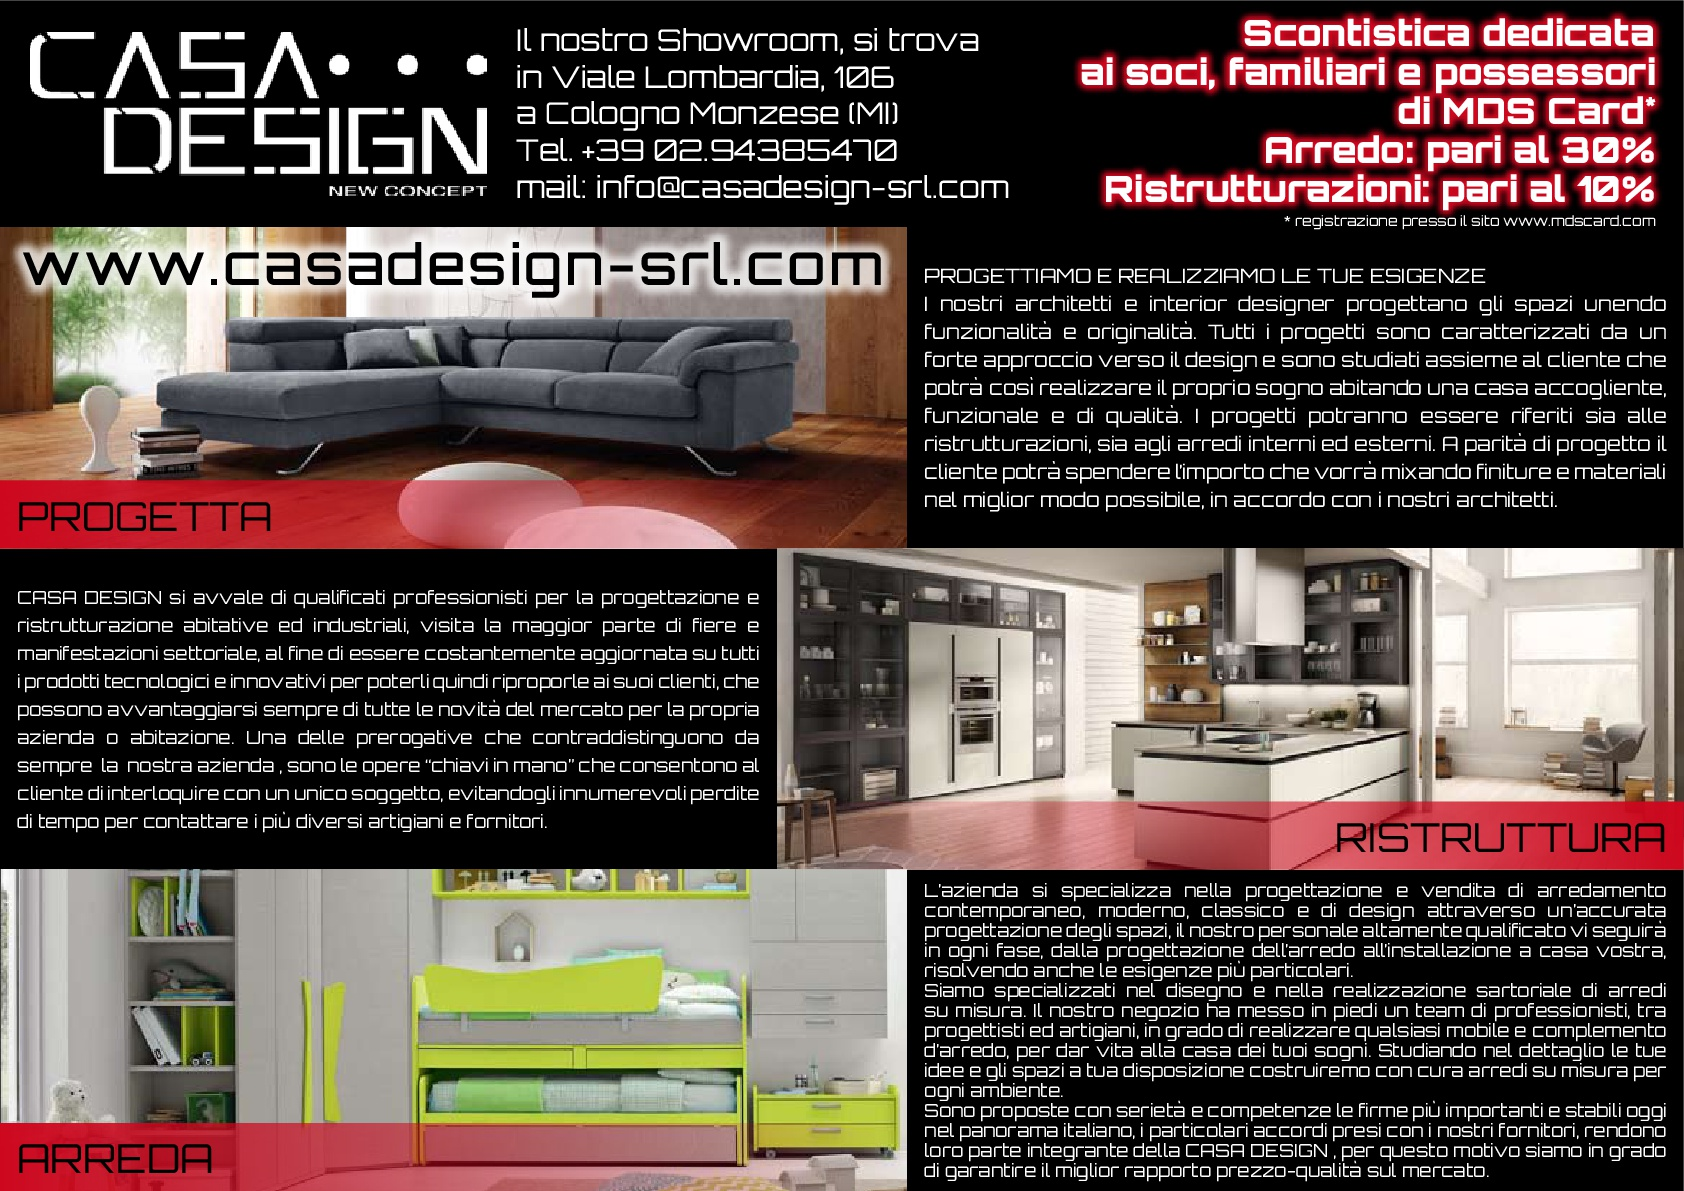 Casa design arredamenti mds for Casa design arredamenti